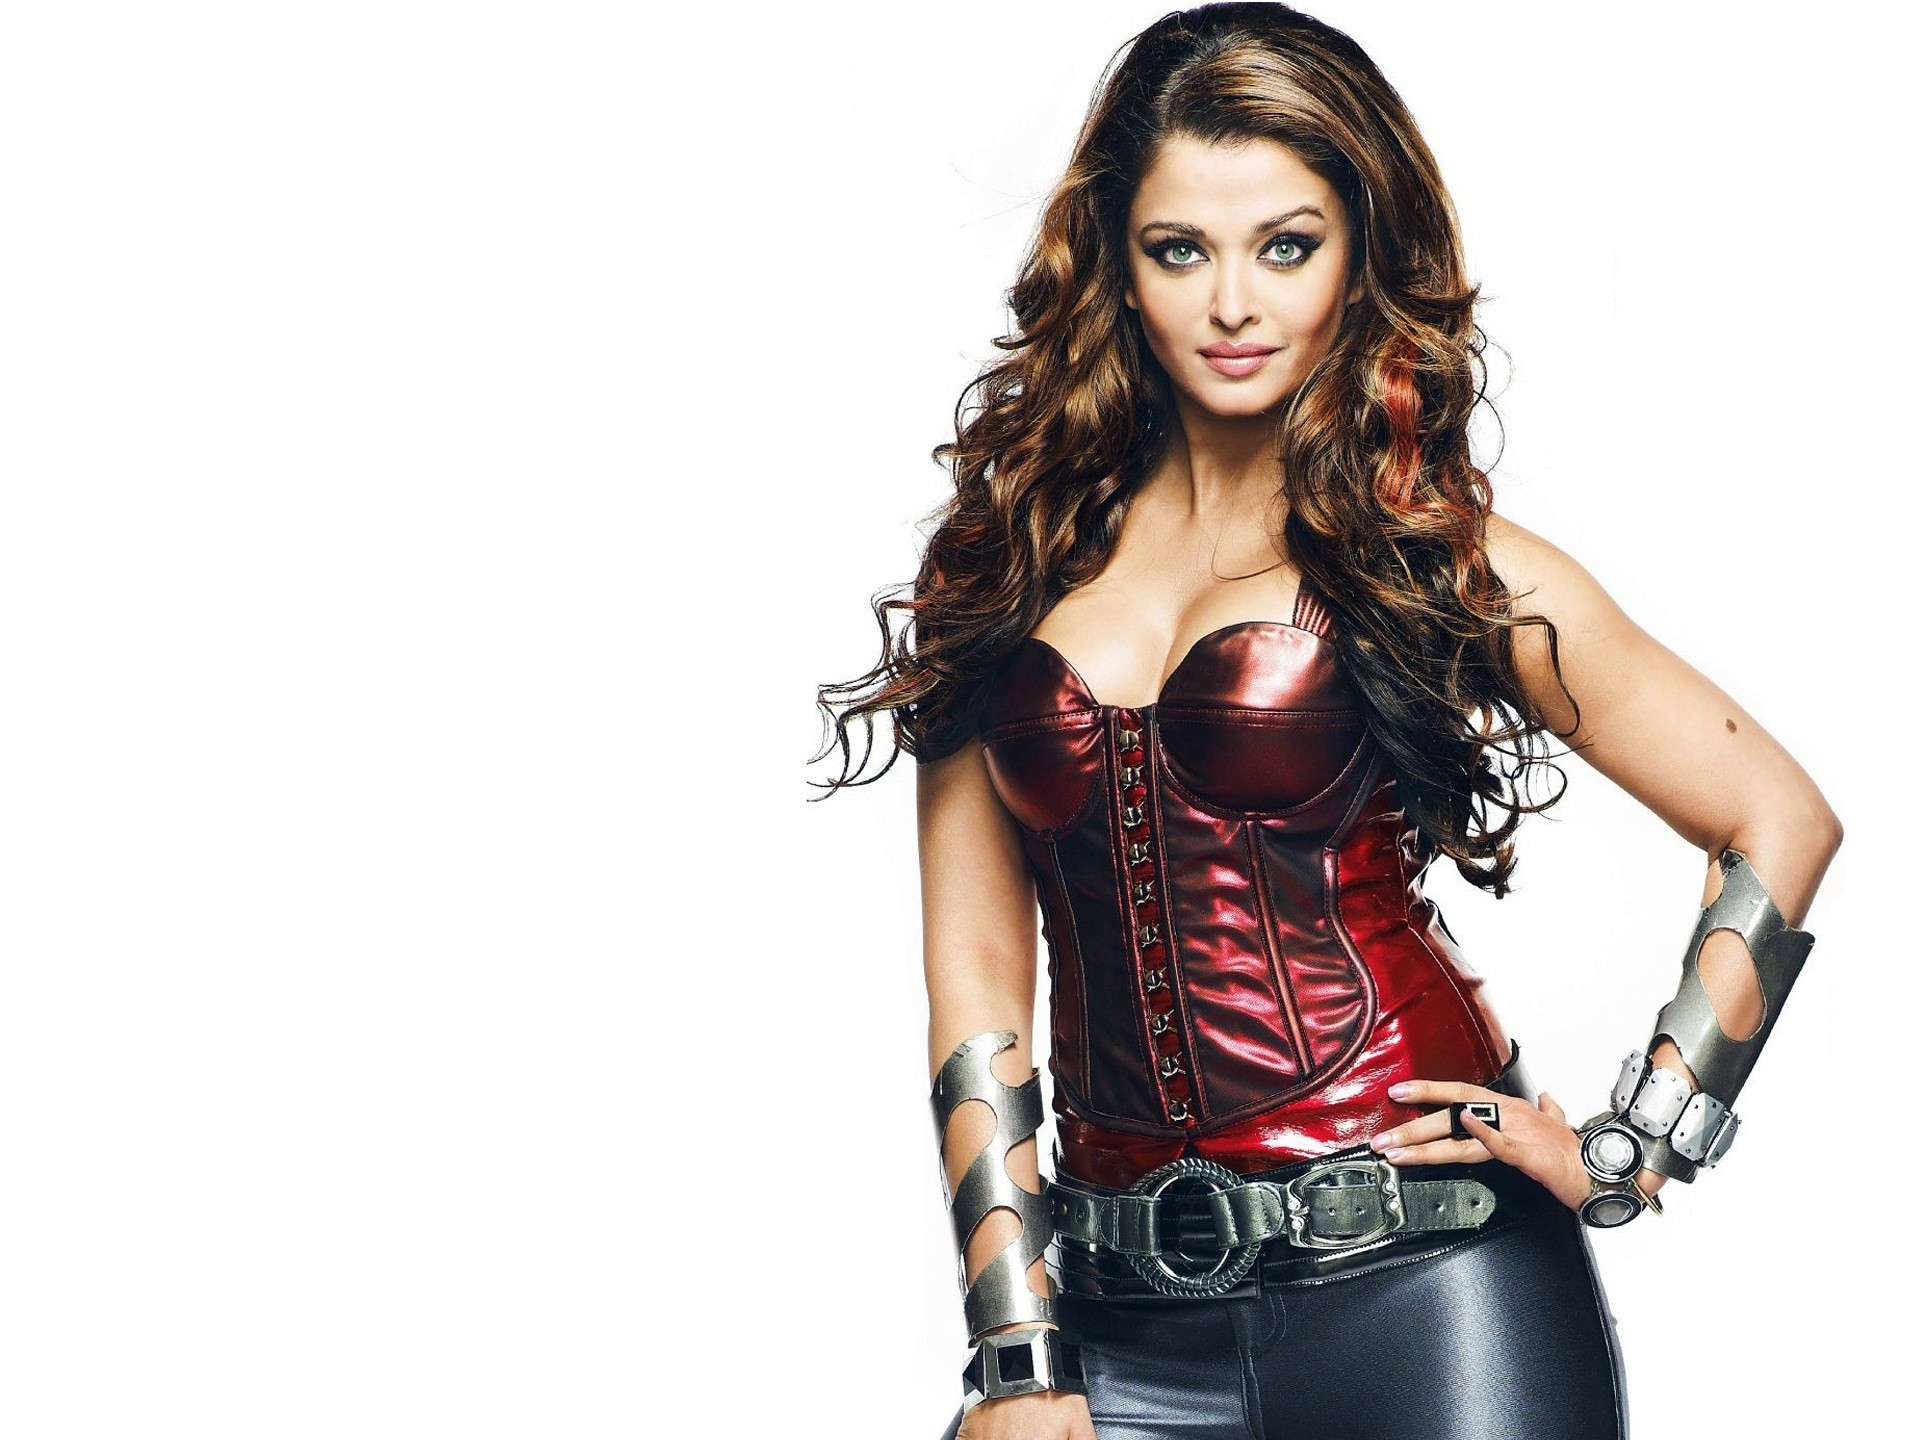 Hd Aishwarya Rai Mobile Download Backgroud Images Free